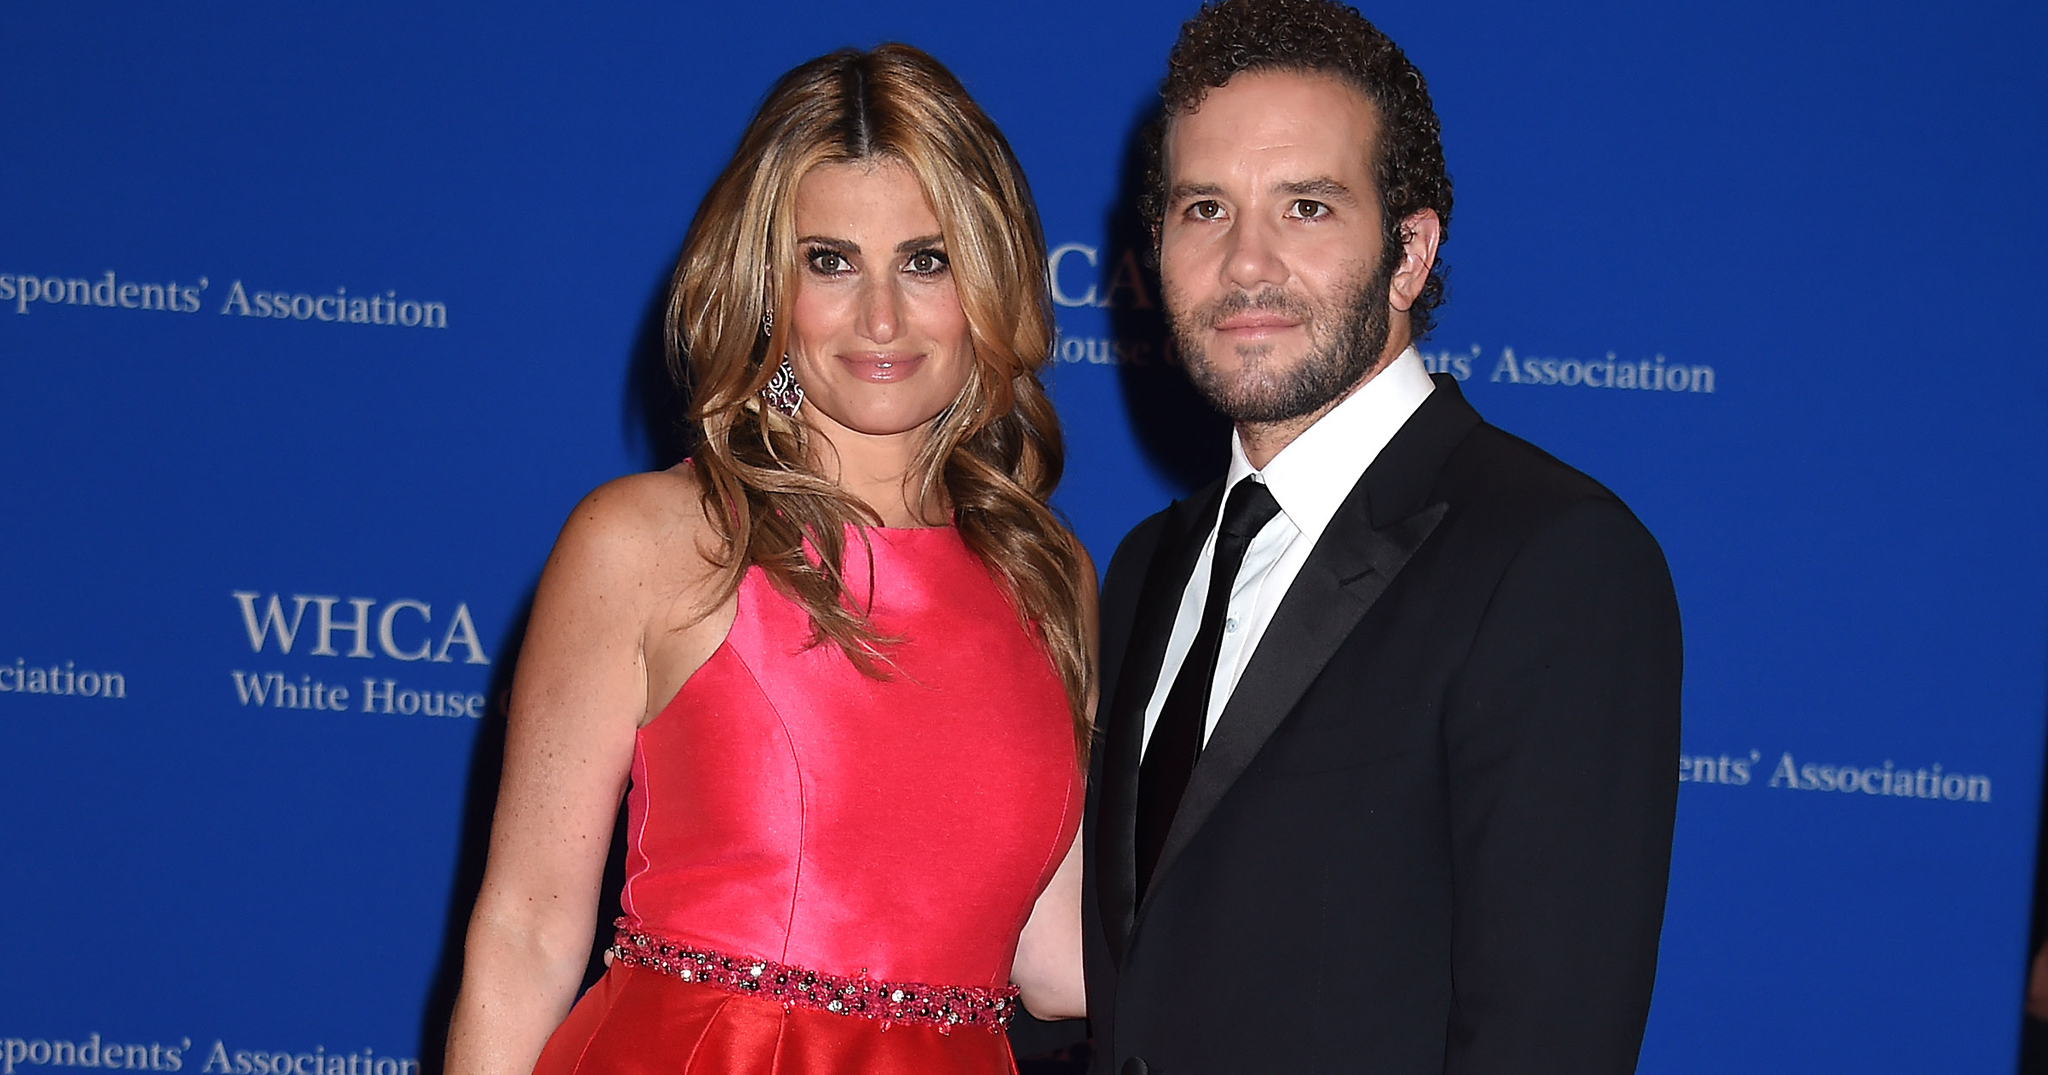 Bridal Pulse: Idina Menzel Marries 'Rent' Co-Star Aaron Lohr | Photo: Splash News | Follow @bridalpulse for more wedding inspiration!